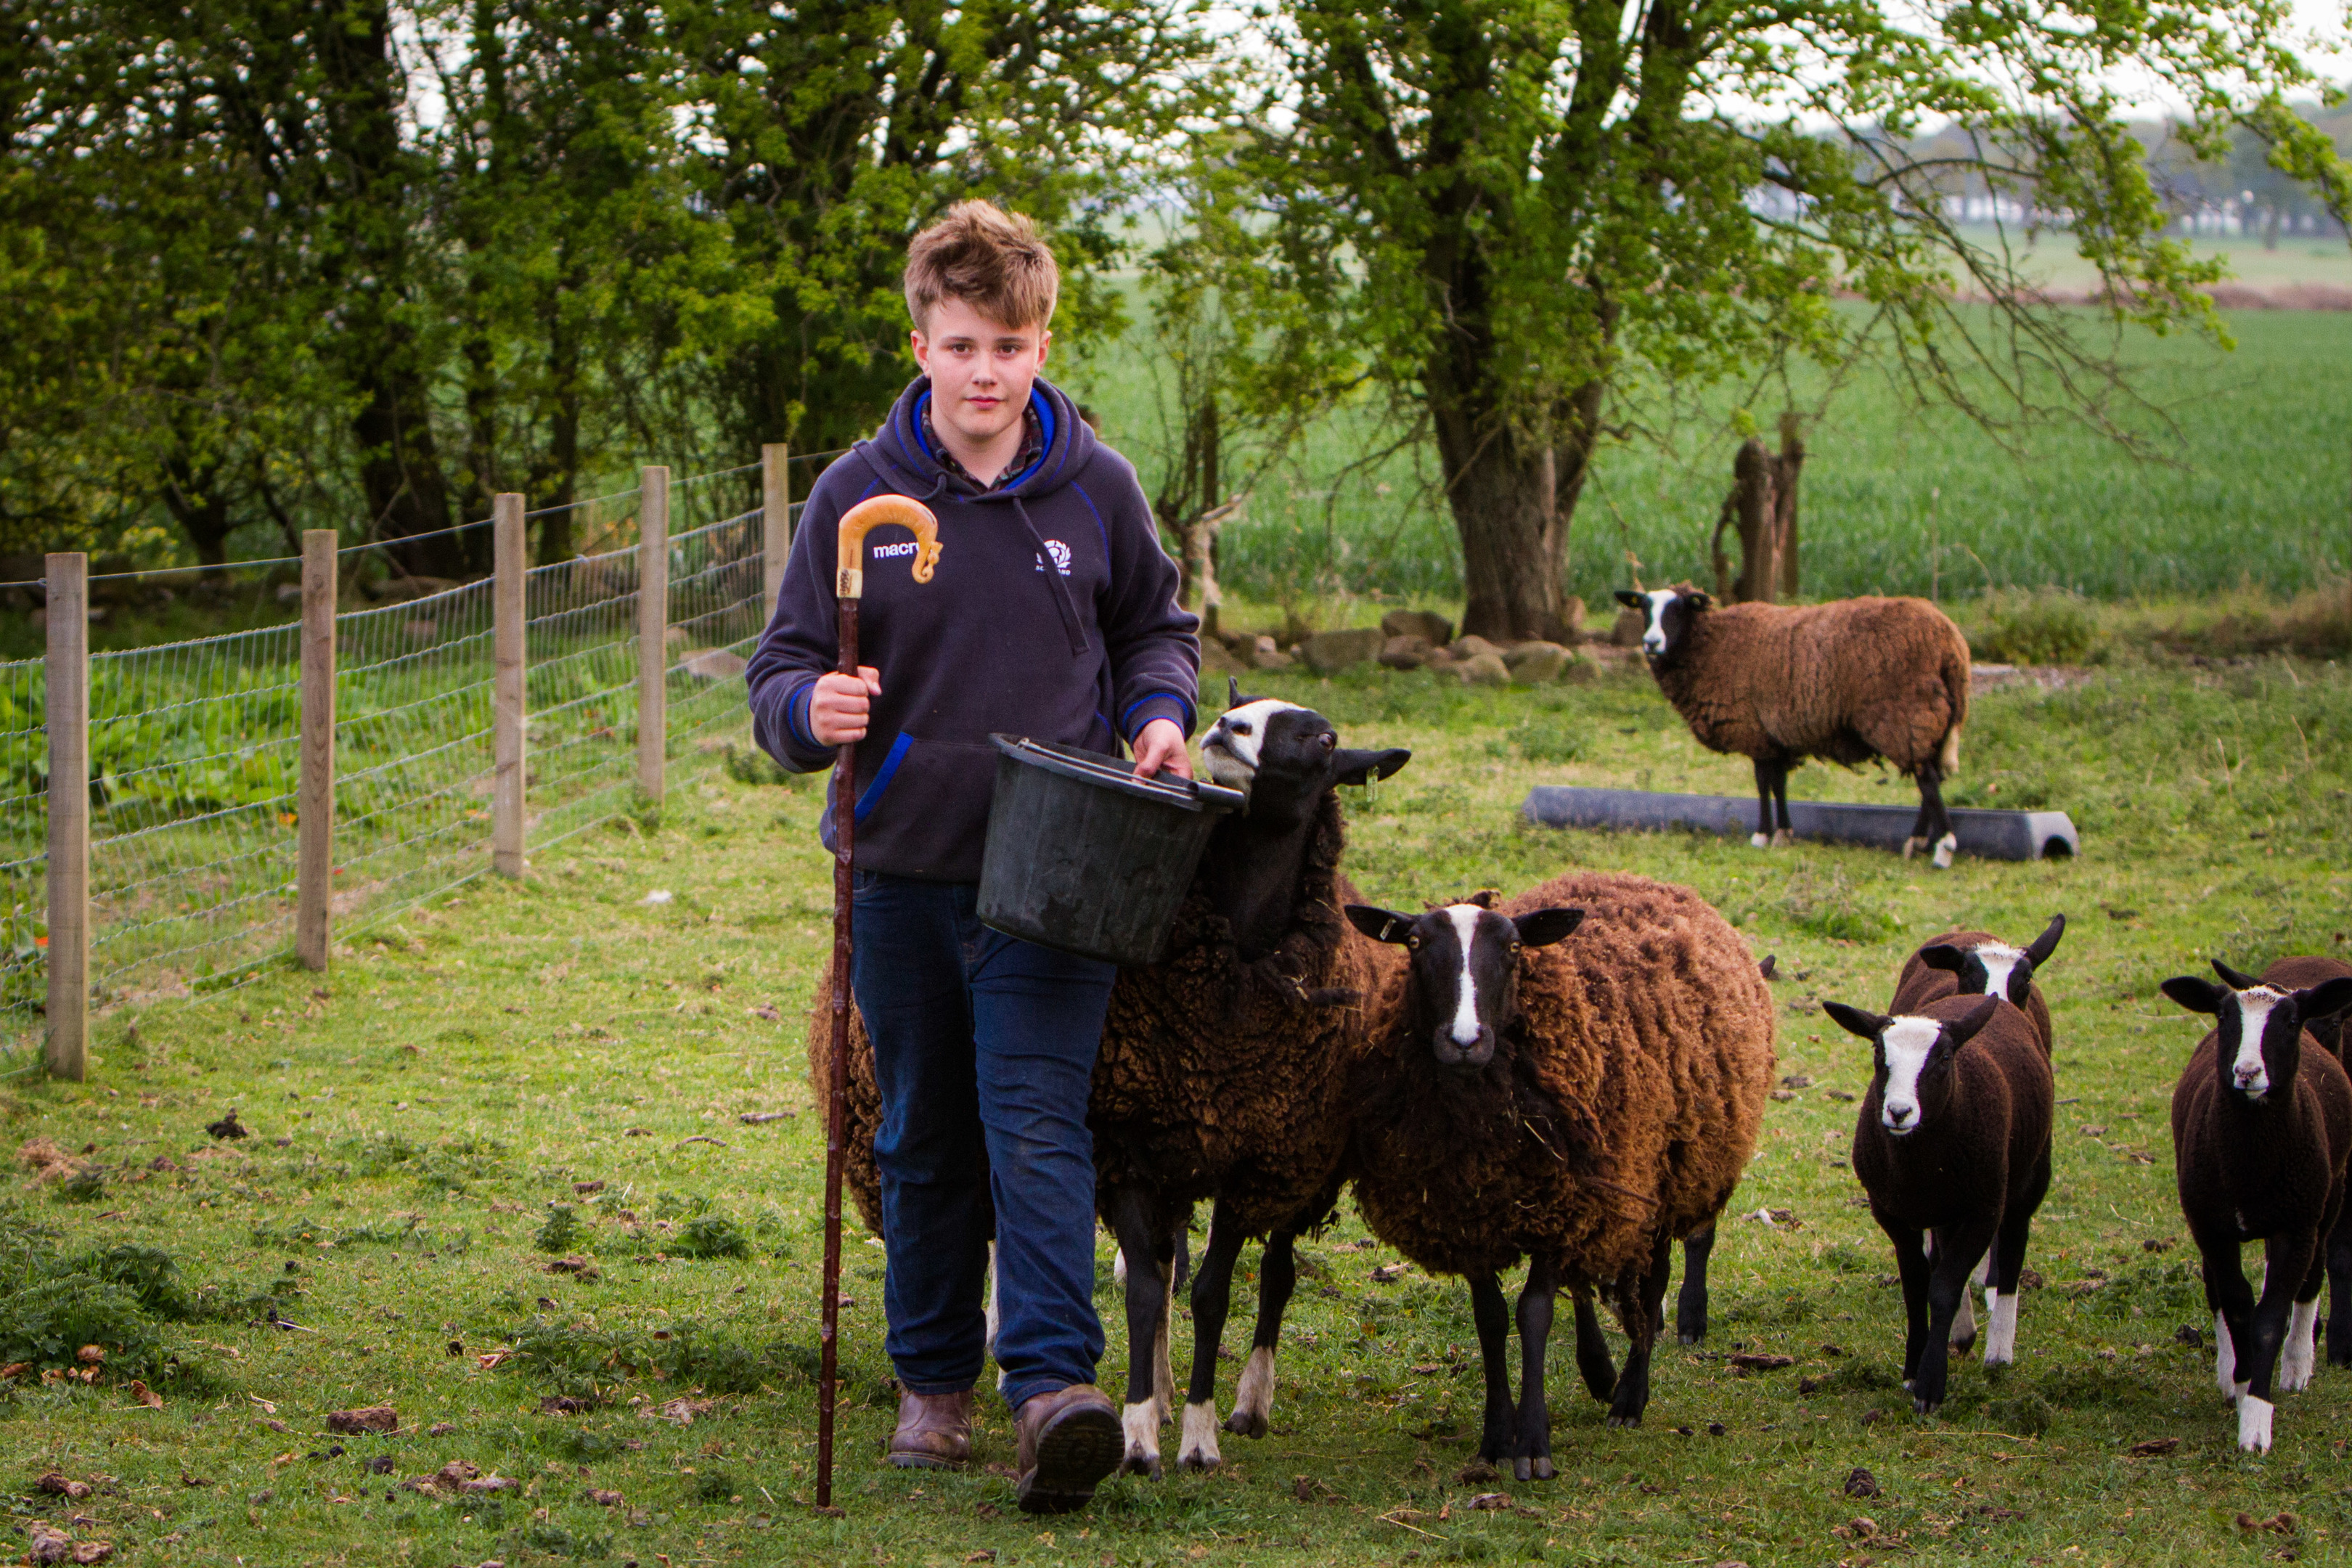 Archie Downie, 14, with his flock. They were the target of two dog attacks in just 36 hours.